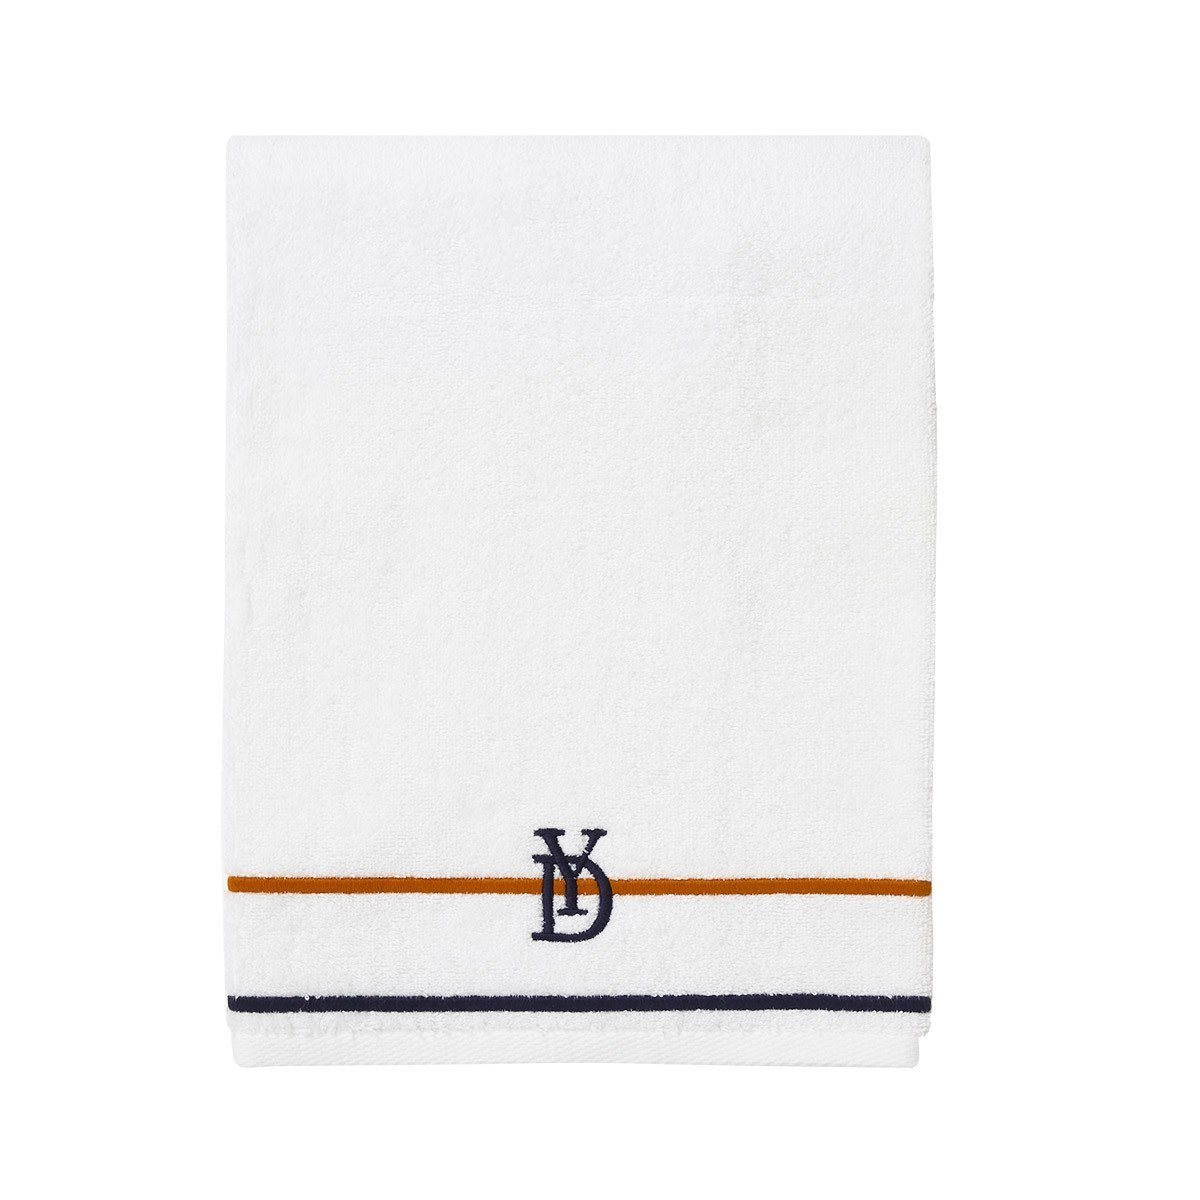 Dyade Bath Towels by Yves Delorme | Fig Linens and Home